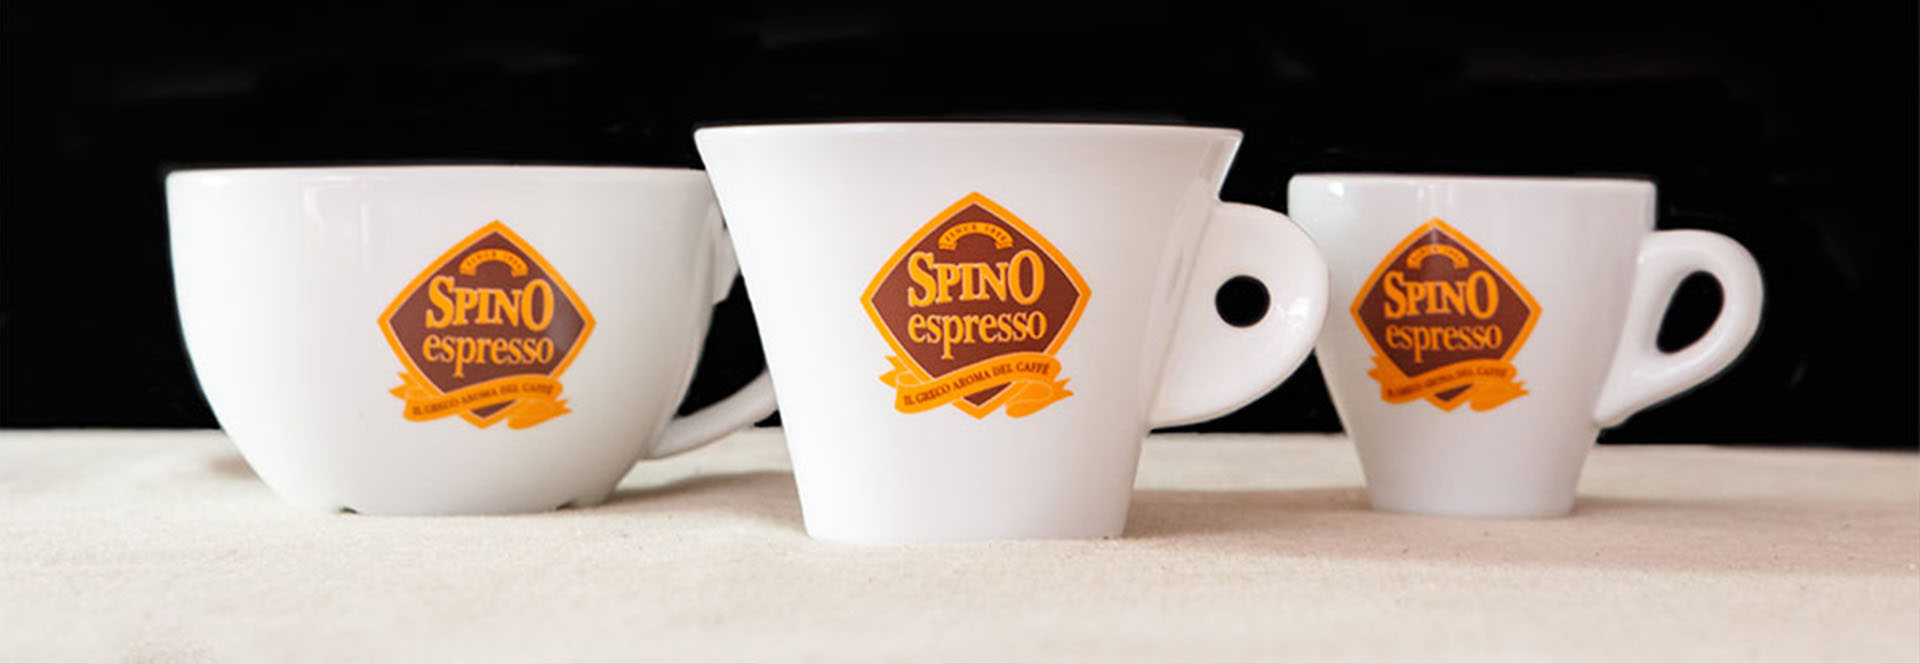 spinos-coffee-cups